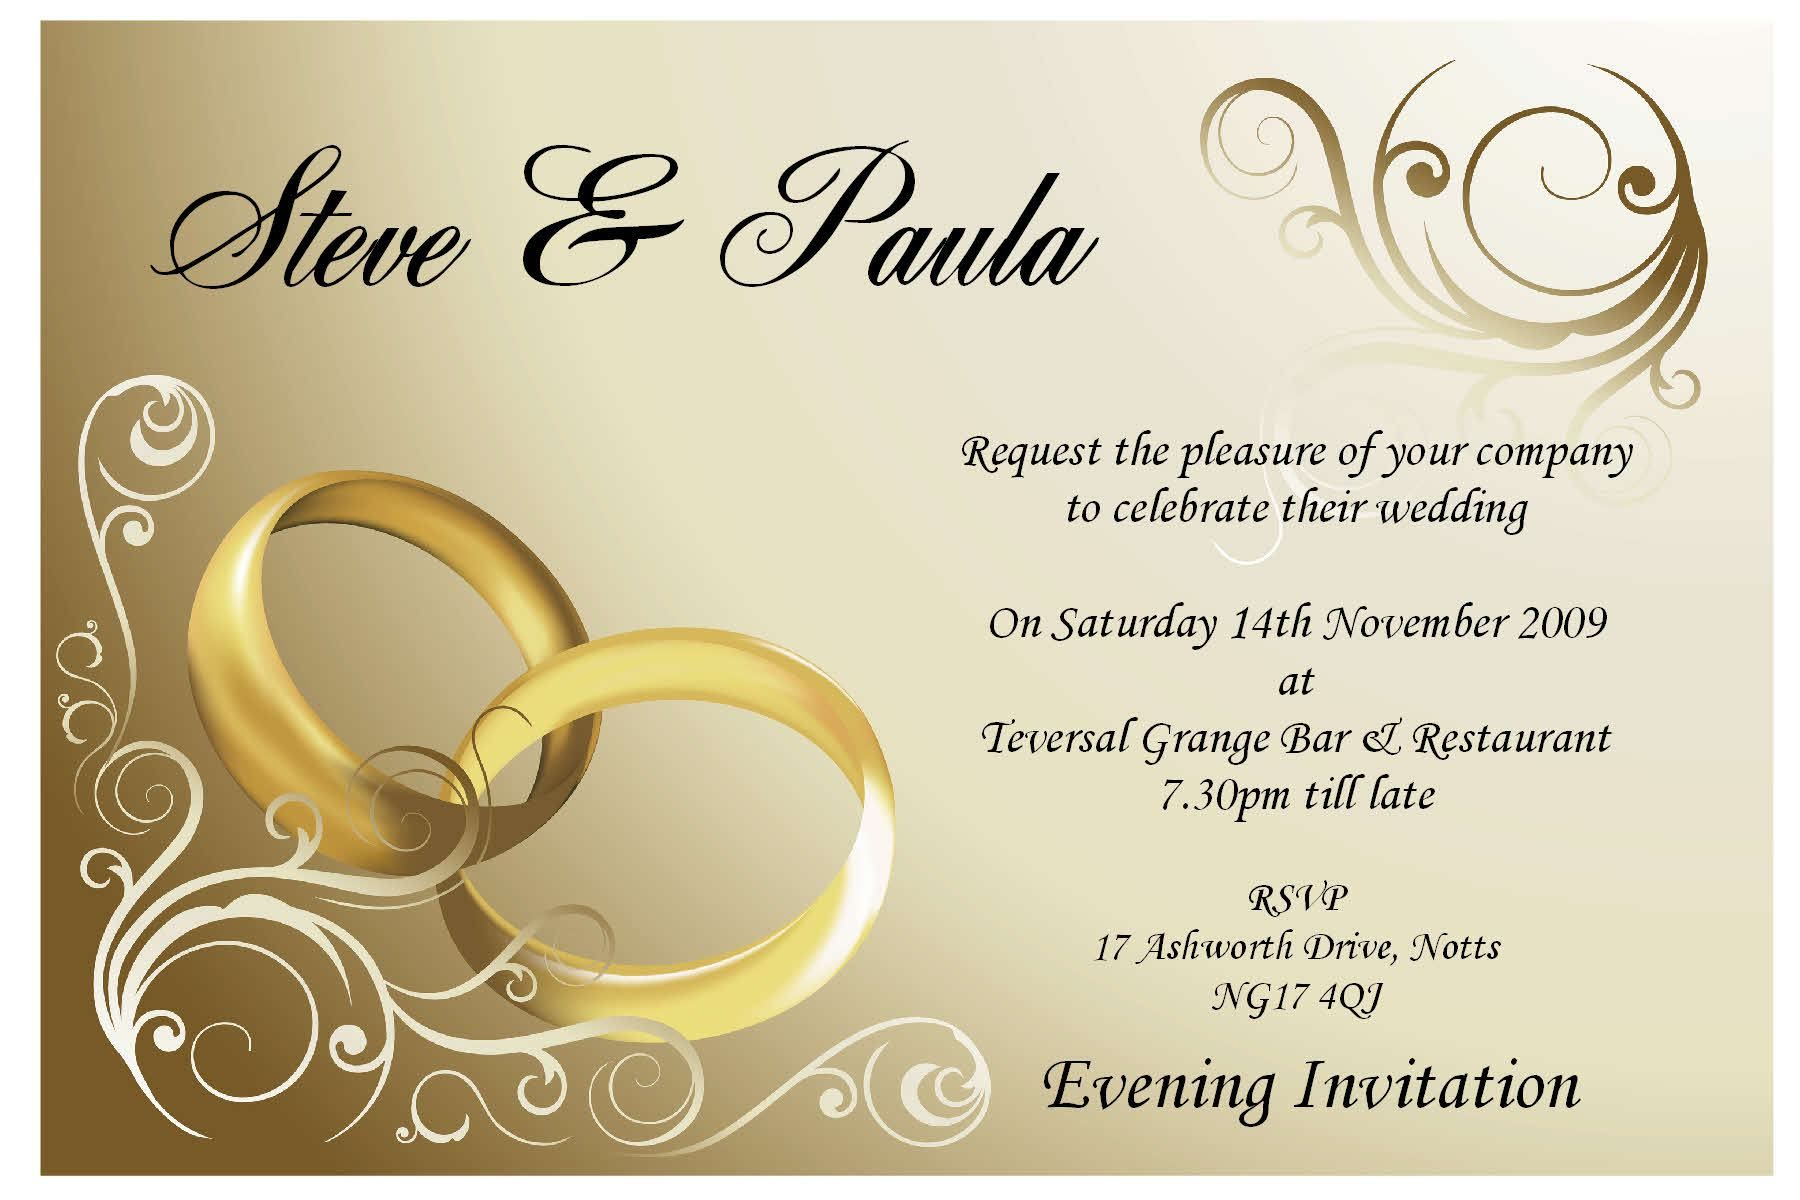 Invitation templates nz inspirationalnew 18th wedding invitation wedding invitation maker 4847299b0ddcbe05975f396a9db45f56 online wedding invitation makerhtml invitation templates nz inspirationalnew 18th stopboris Choice Image